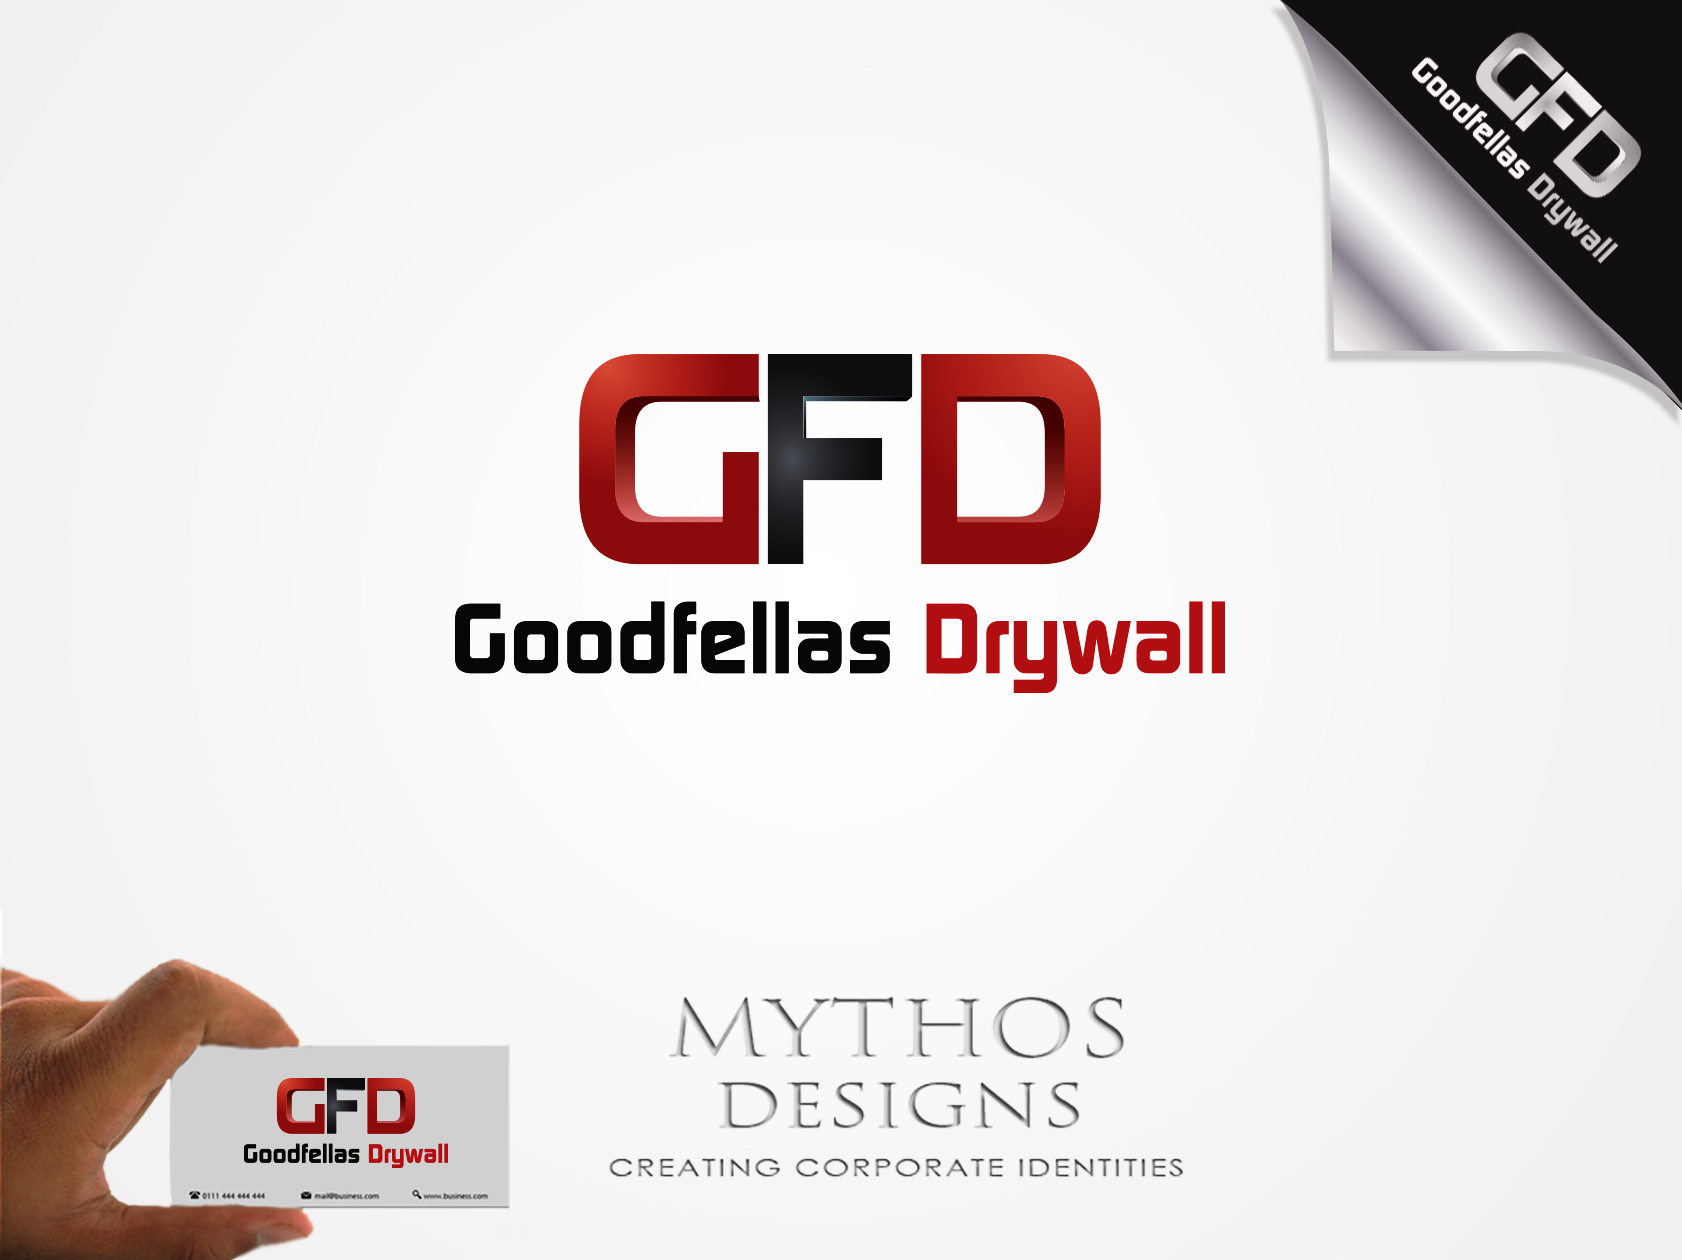 Logo Design by Mythos Designs - Entry No. 188 in the Logo Design Contest Creative Logo Design for Goodfellas Drywall.